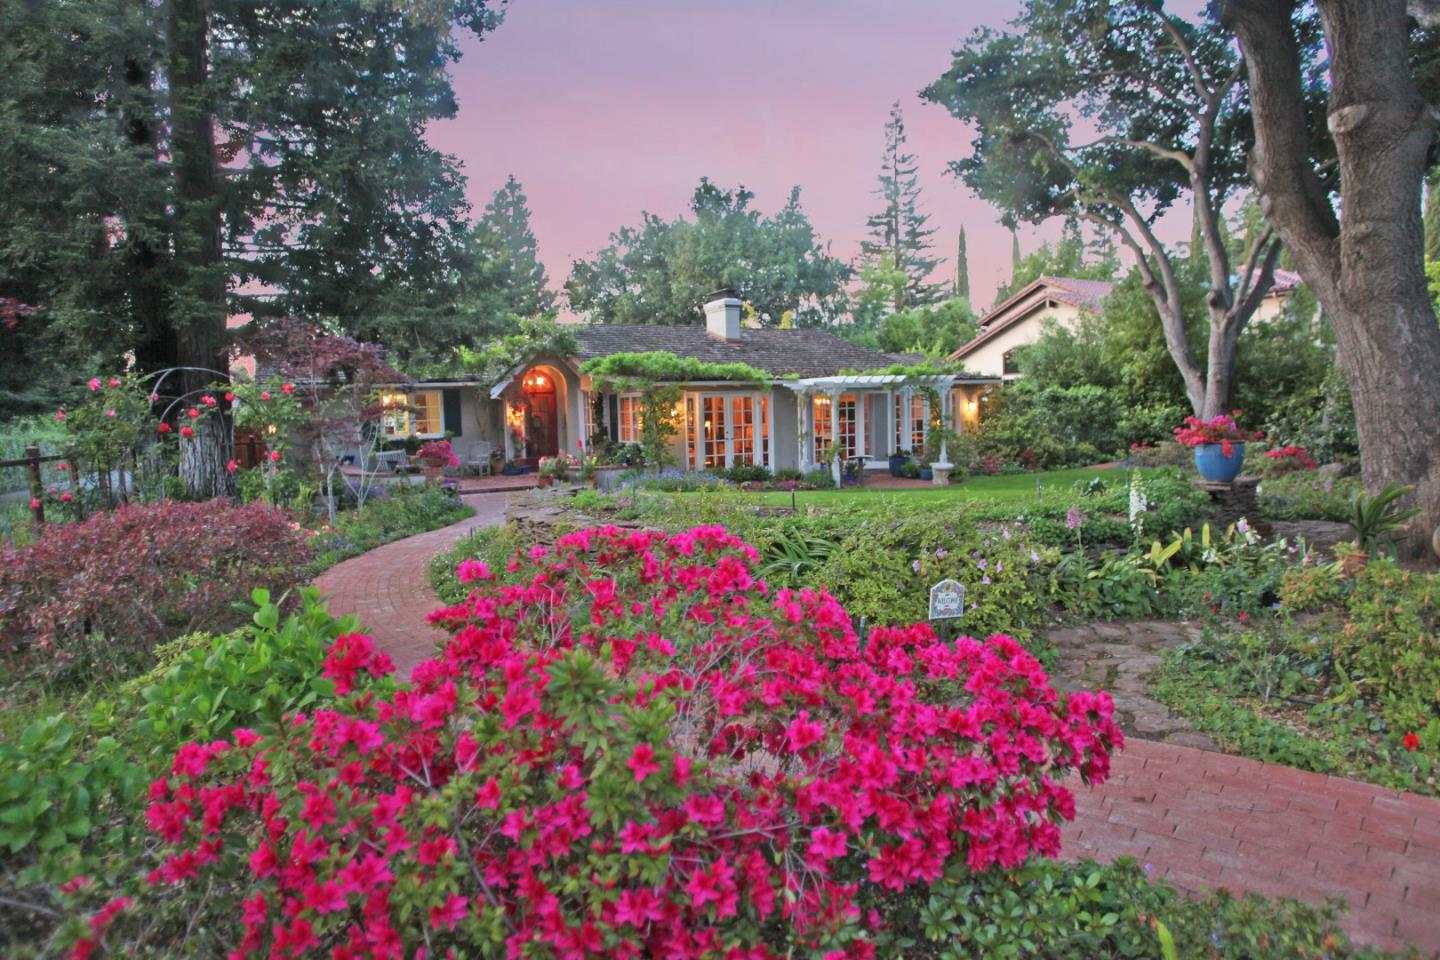 The minute that you pass through the lovely, white, wooden, archway with picket style gates, you will instantly be transported into an idyllic country English setting. Peace and tranquility abound as you admire the stunning landscaping & charm that this property has to offer & quietly escape the hustle and bustle of Silicon Valley. The surroundings are so serene and breathtaking that you will immediately feel like a Thomas Kinkade painting has come to life right before your eyes. 1219 Portland Avenue is a one of a kind property that the current owners have meticulously cultivated and lovingly cared for for more than forty years. With its huge lot size & breathtaking grounds, the possibilities are endless. County records are most likely, incorrect pertaining to square footage, age of home, bedrooms, bathrooms (Buyer to verify). Seller believes that original portion of home may have been built around 1927.  Located in an excellent Los Altos neighborhood w/ top rated Los Altos Schools!